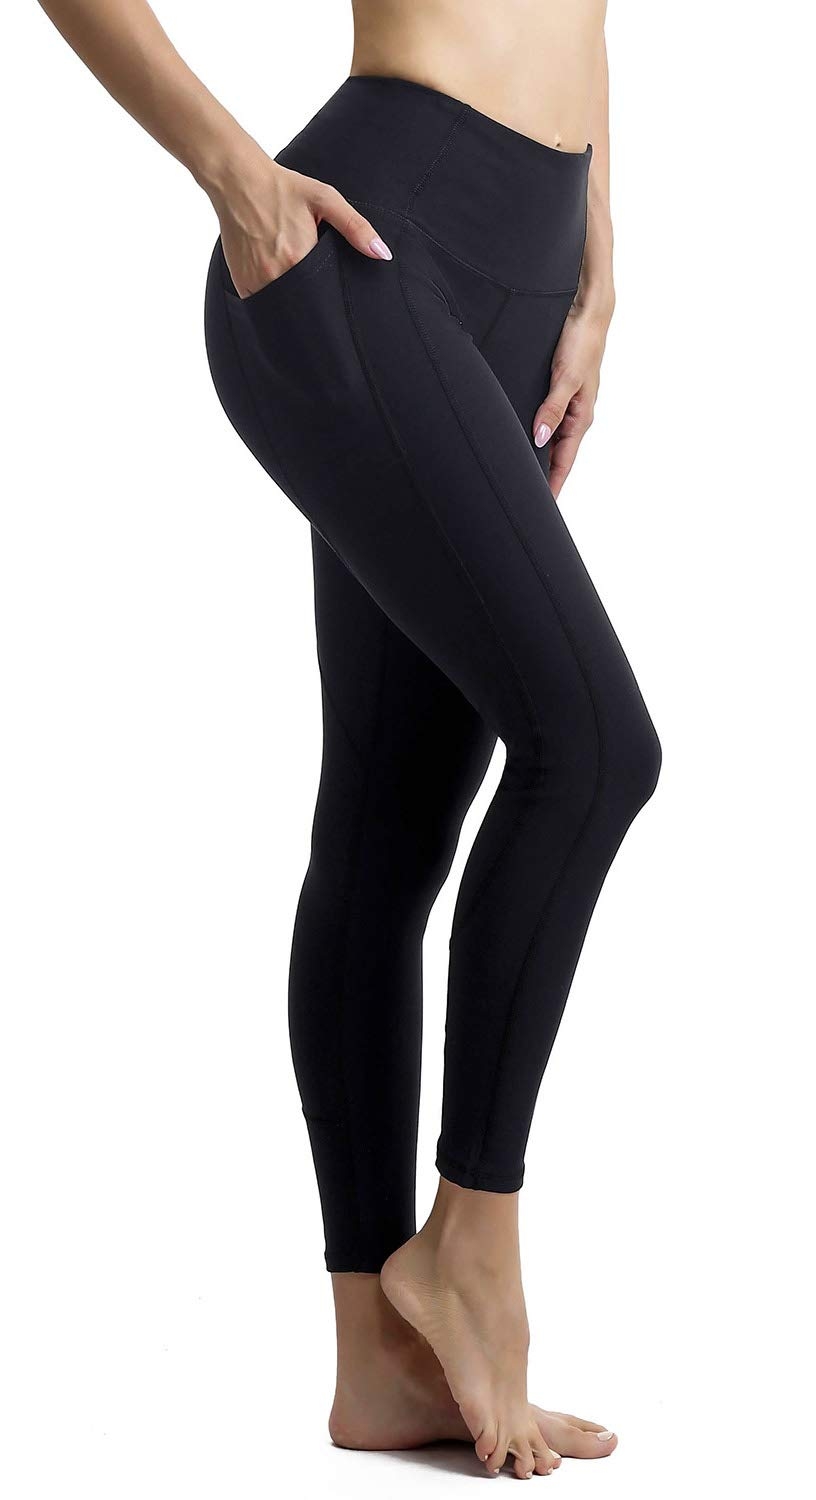 Persit Womens Premium Yoga Pants with Pockets, Non See